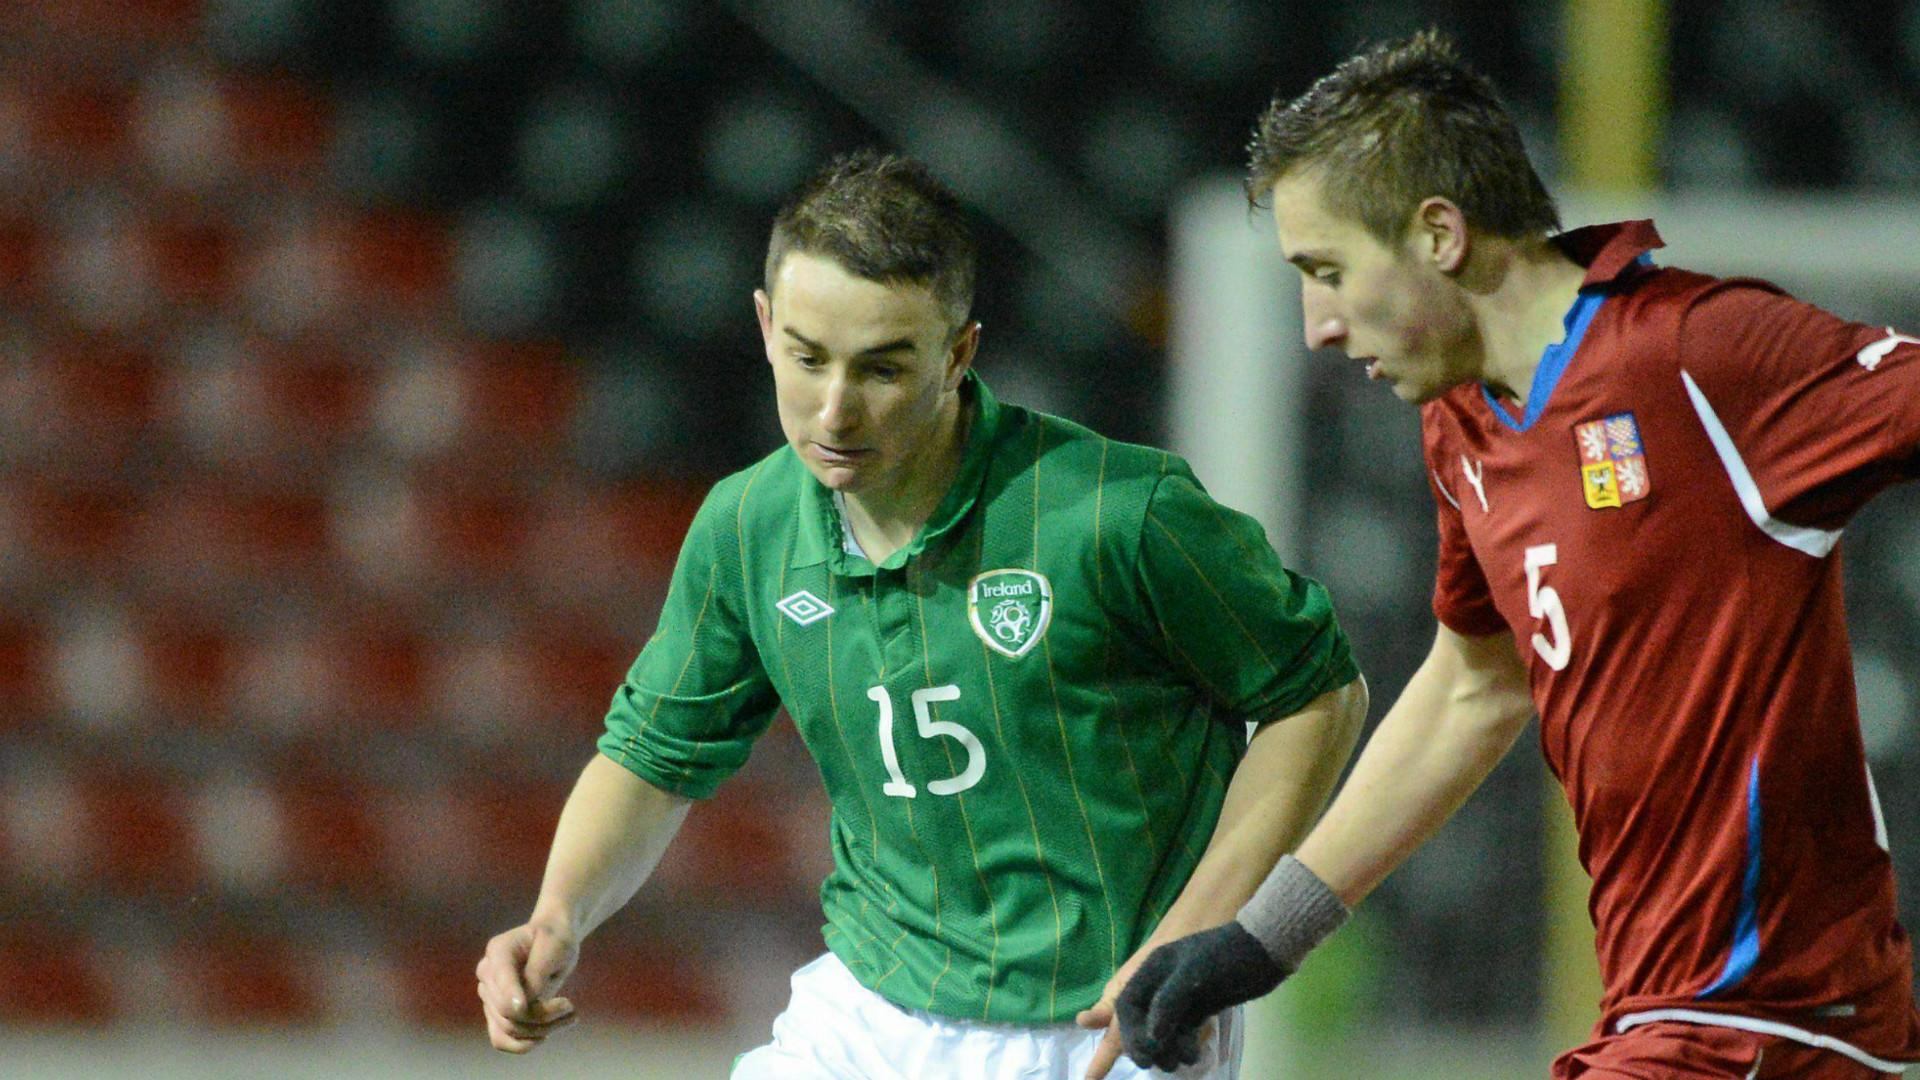 Former Manchester United youth joins Finn Harps